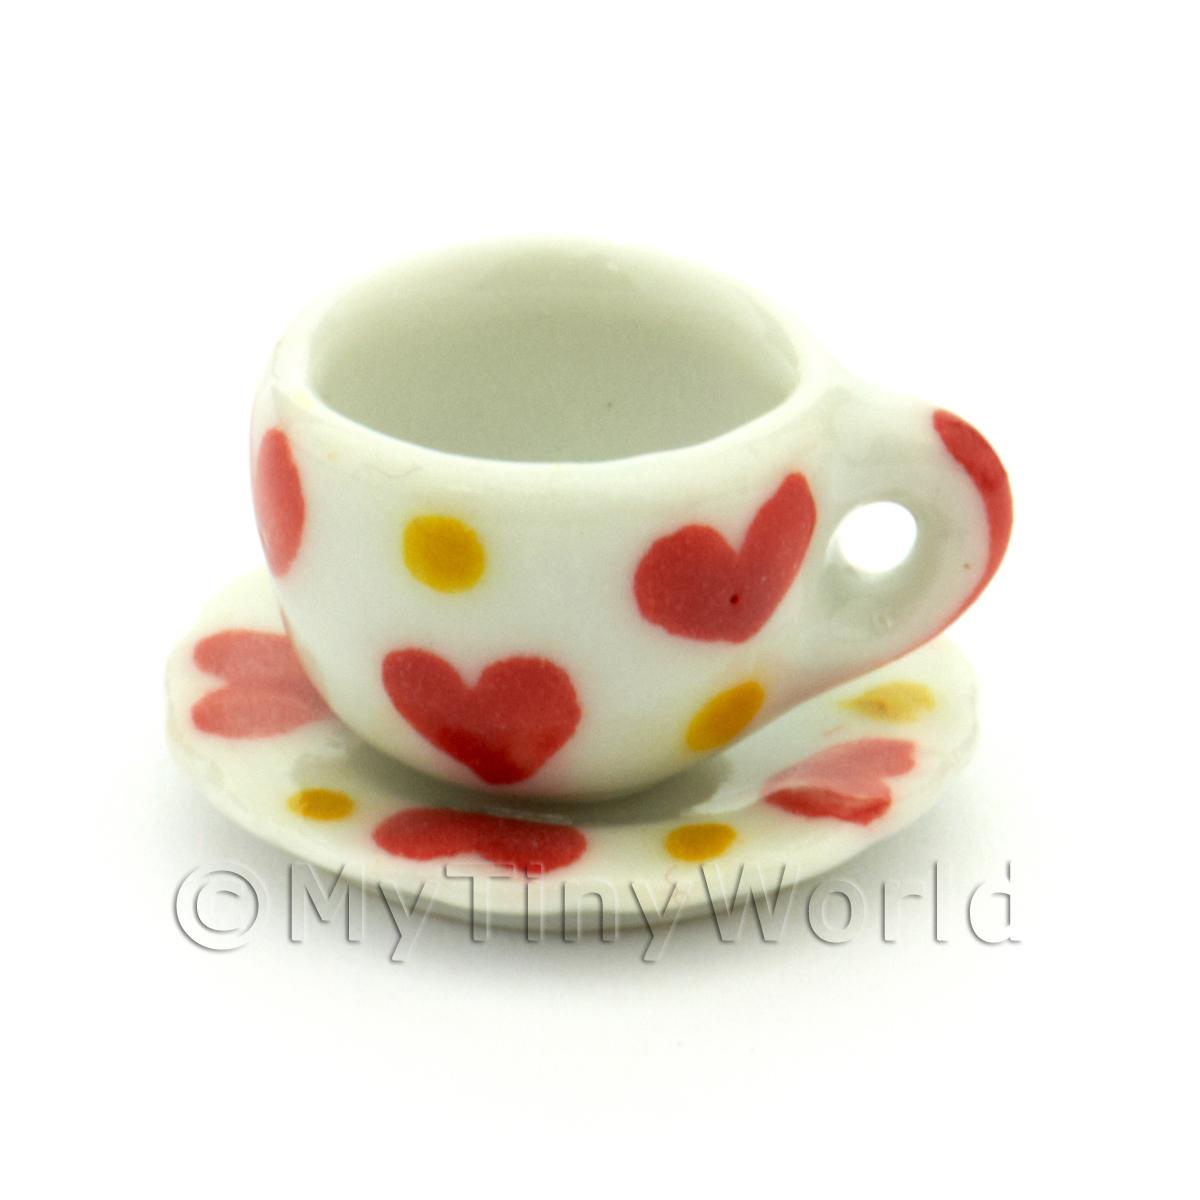 Dolls House Miniature Ceramic Cup And Saucer With Heart Pattern